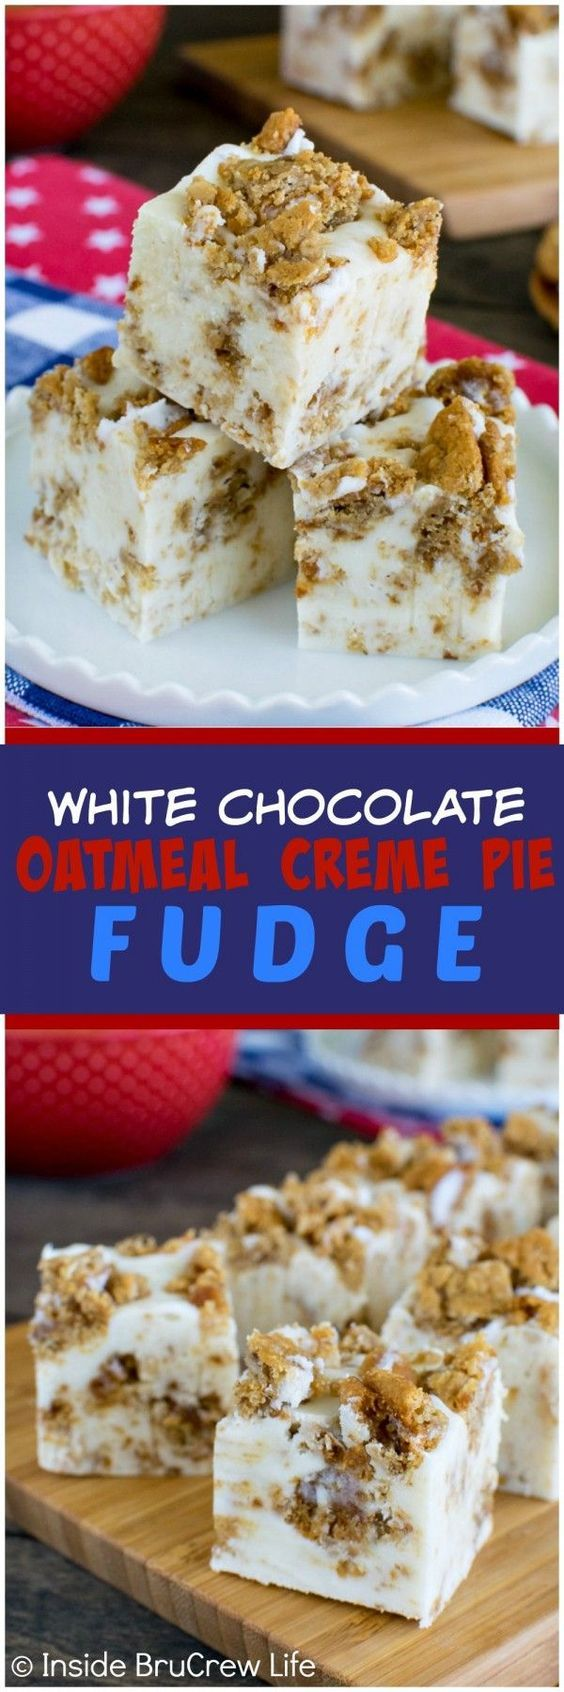 White Chocolate Oatmeal Creme Pie Fudge - this easy 4 ingredient fudge is loaded with soft oatmeal cookies and marshmallow.  Awesome no bake dessert recipe!